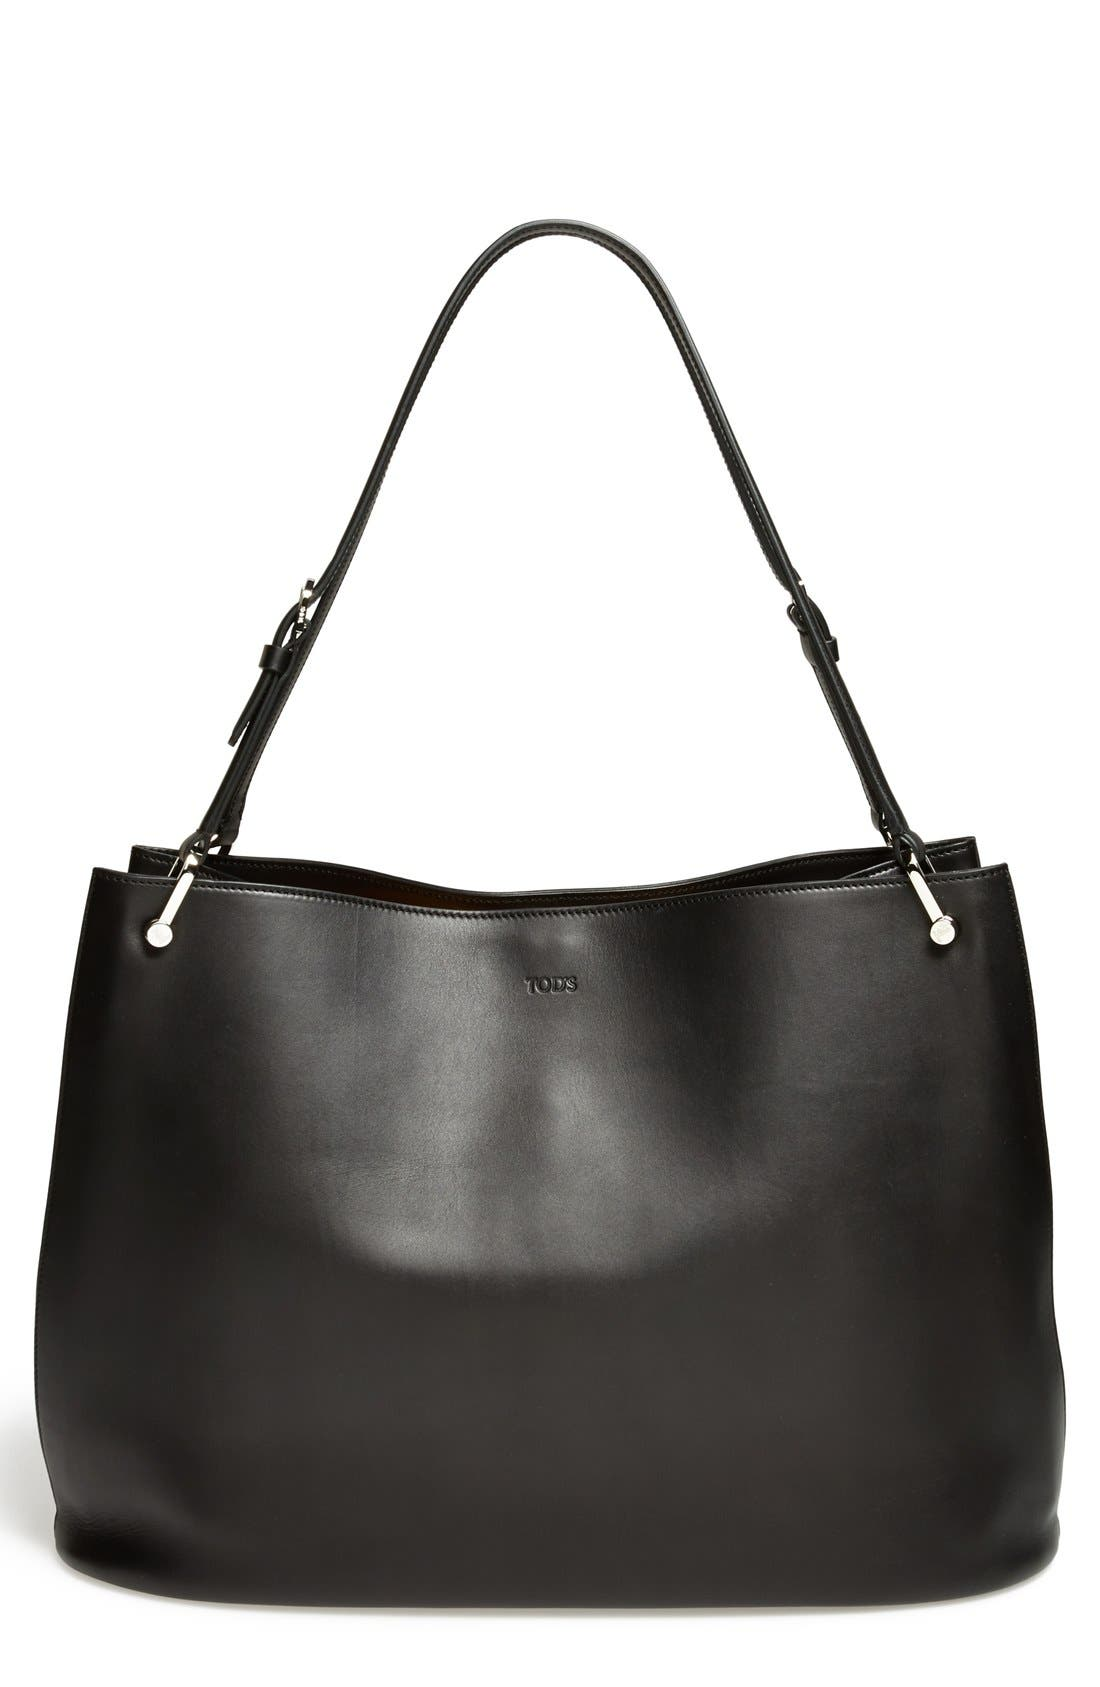 Main Image - Tod's 'Borse - Grande' Leather Shopper